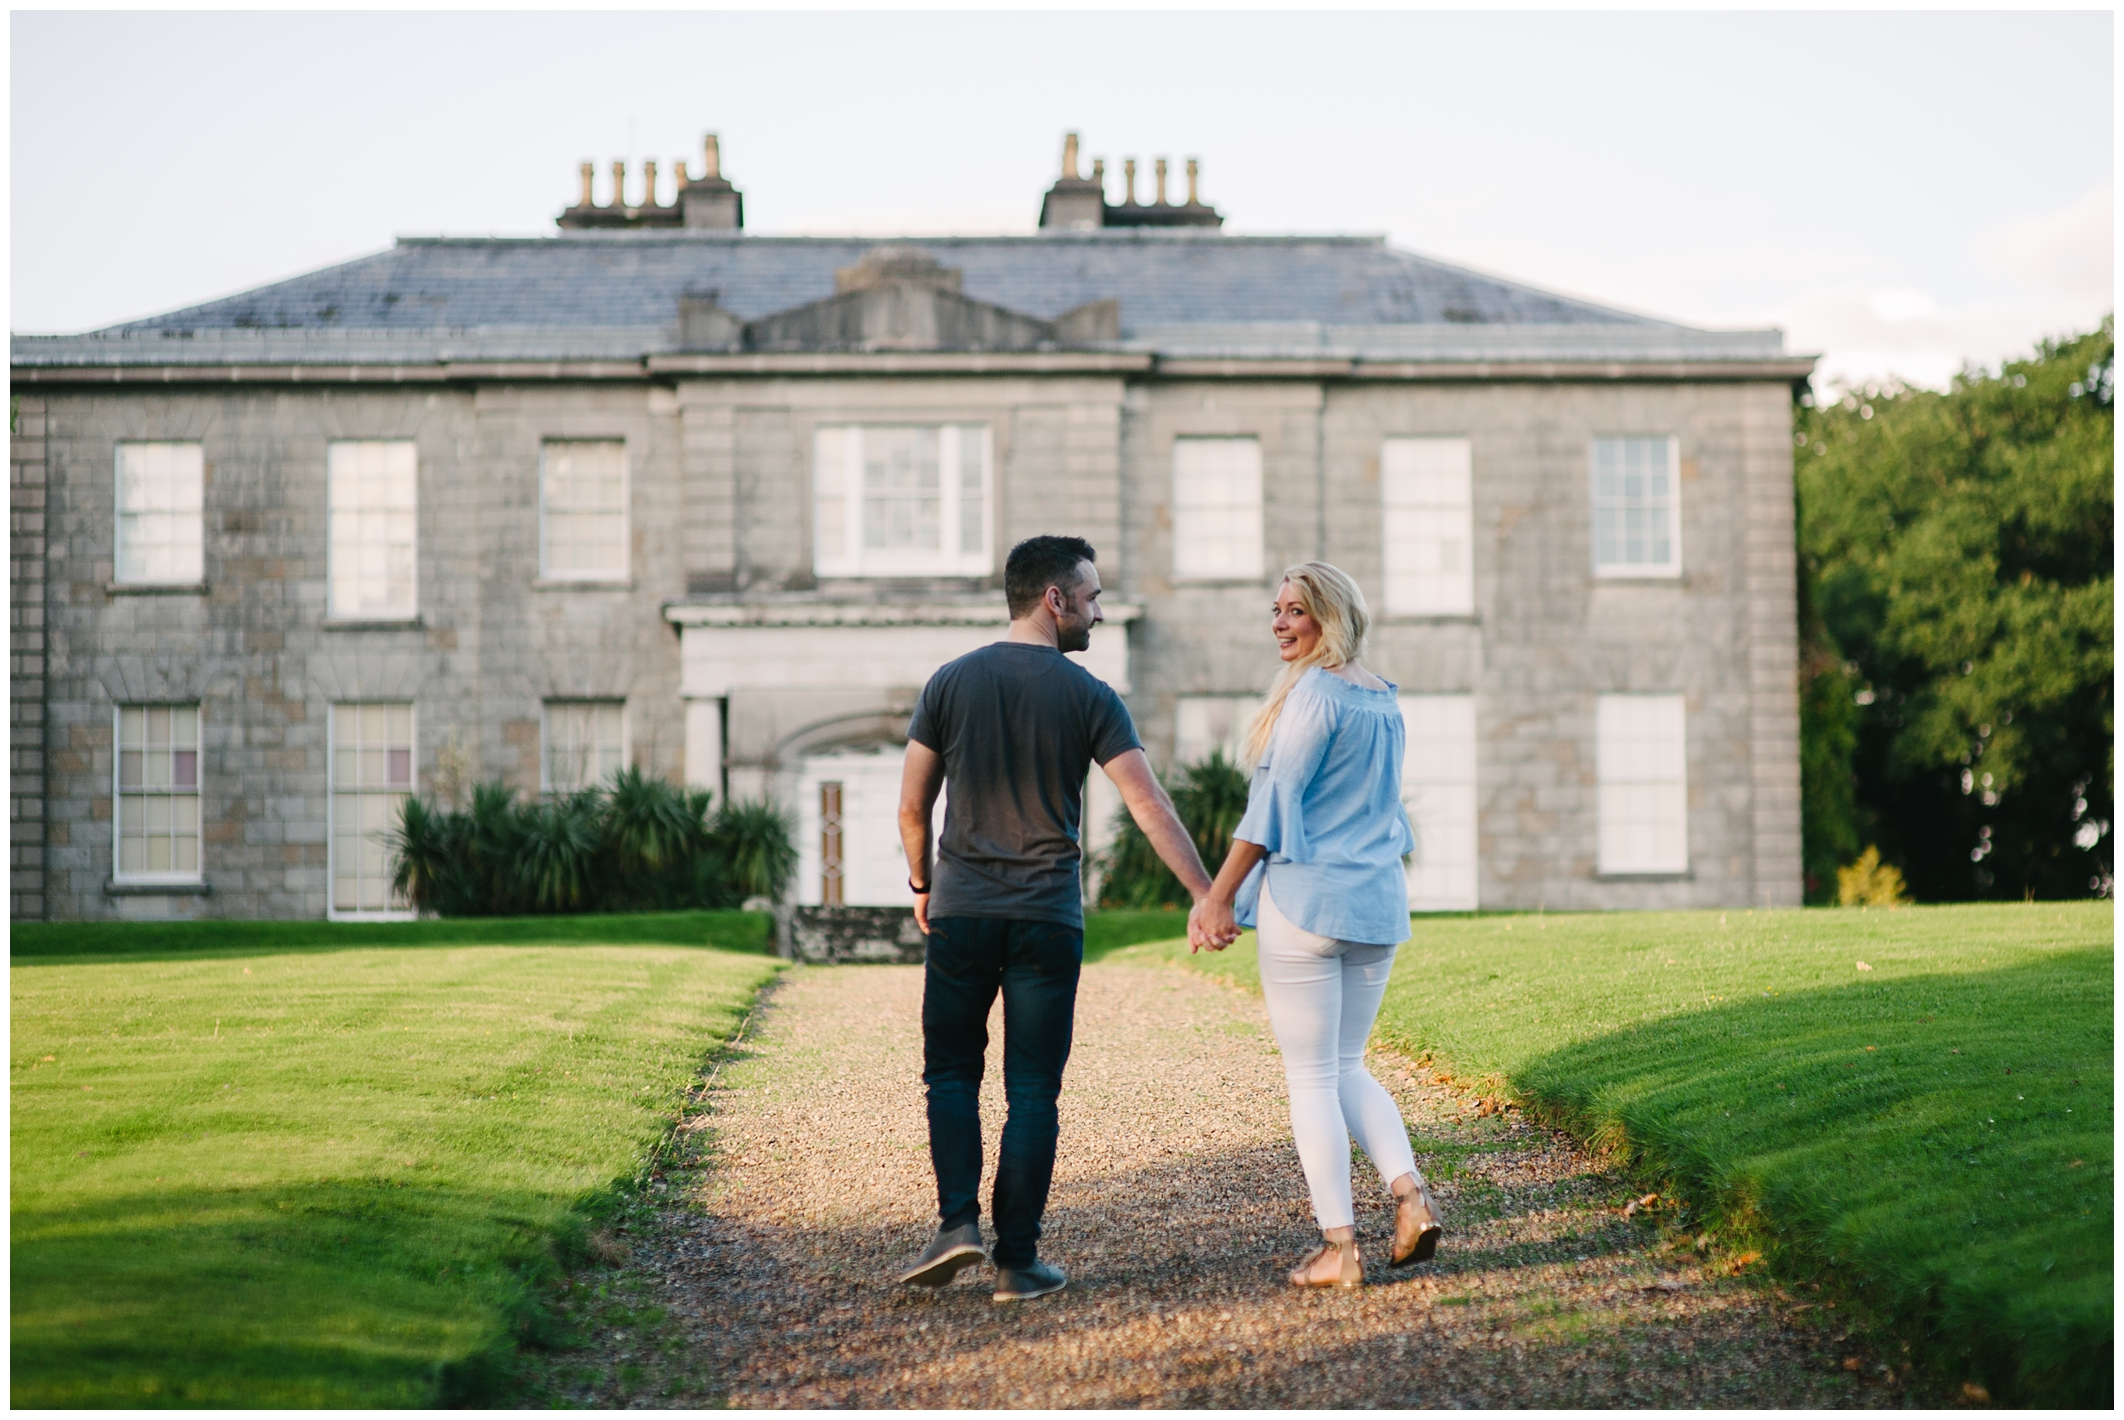 louise_keith_pre_wedding_armagh_jude_browne_photography_0001.jpg